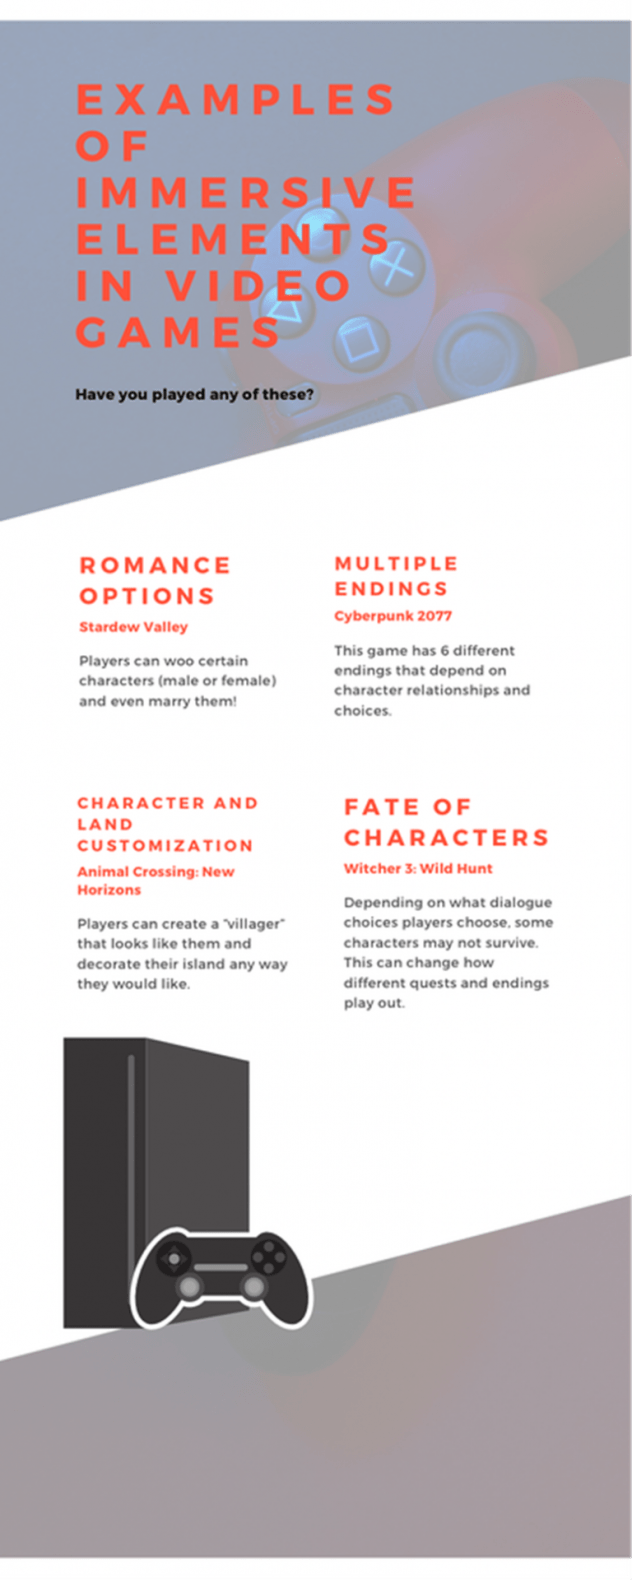 Infographic on the types of immersion elements in video game characters.